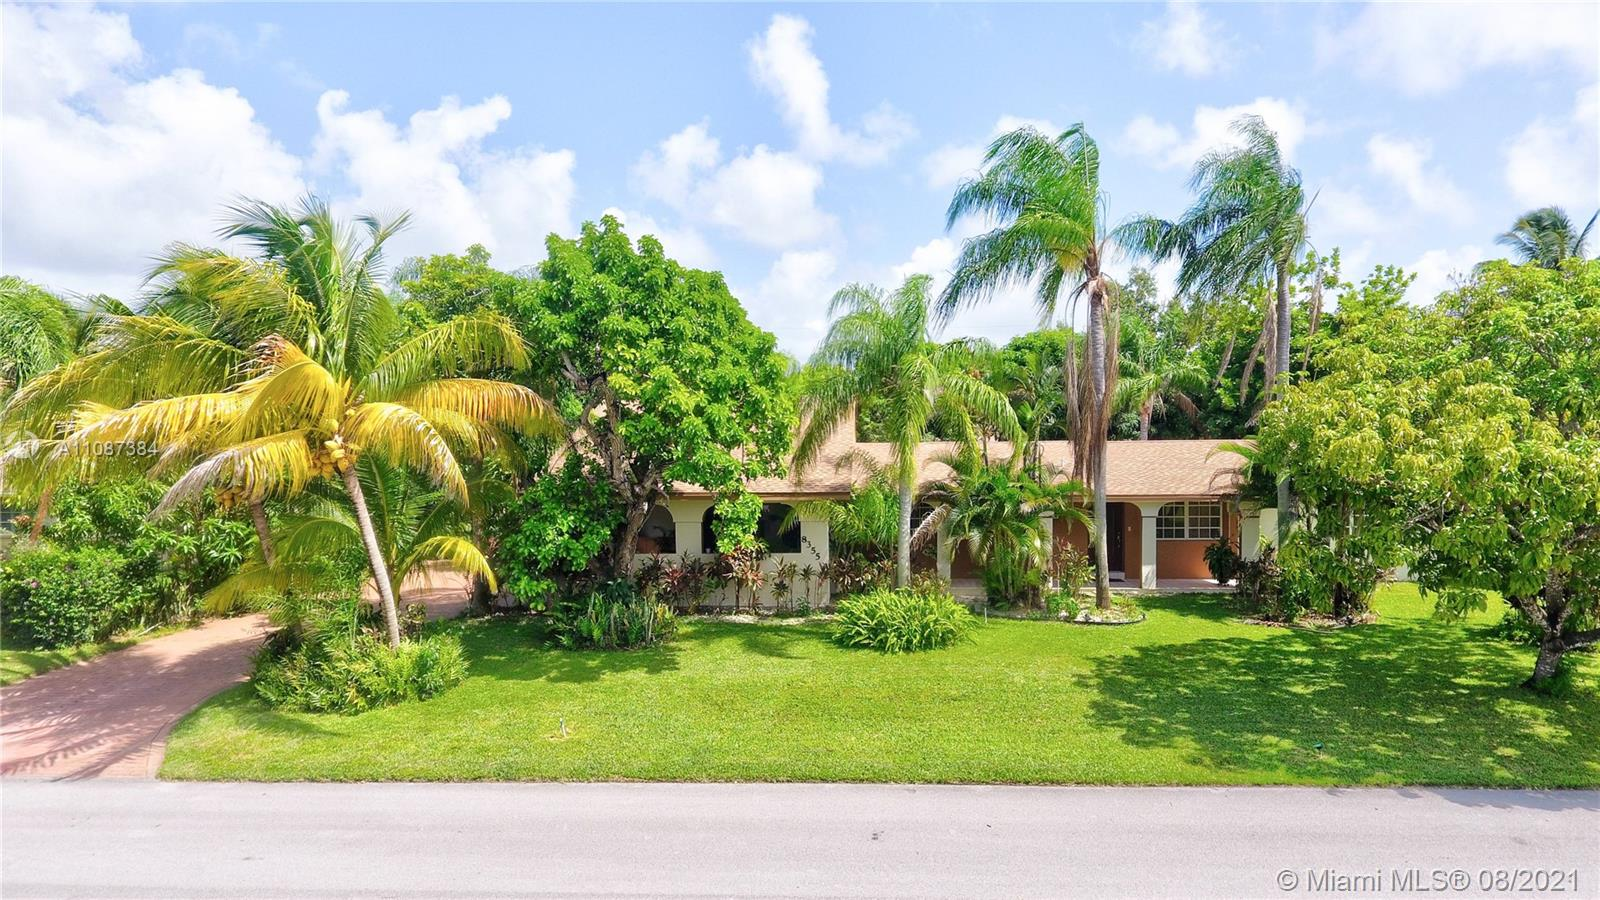 Don't miss this 4/3 house in the family-oriented neighborhood of Palmetto Bay, located close to great schools & parks. Spacious home perfect for a growing family looking for a blank canvas to make their own. Large kitchen with granite countertops. New roof (4,200 Sq Ft) and AC in 2019. This home also boasts a wide array of Caribbean exotic and organic fruit trees.